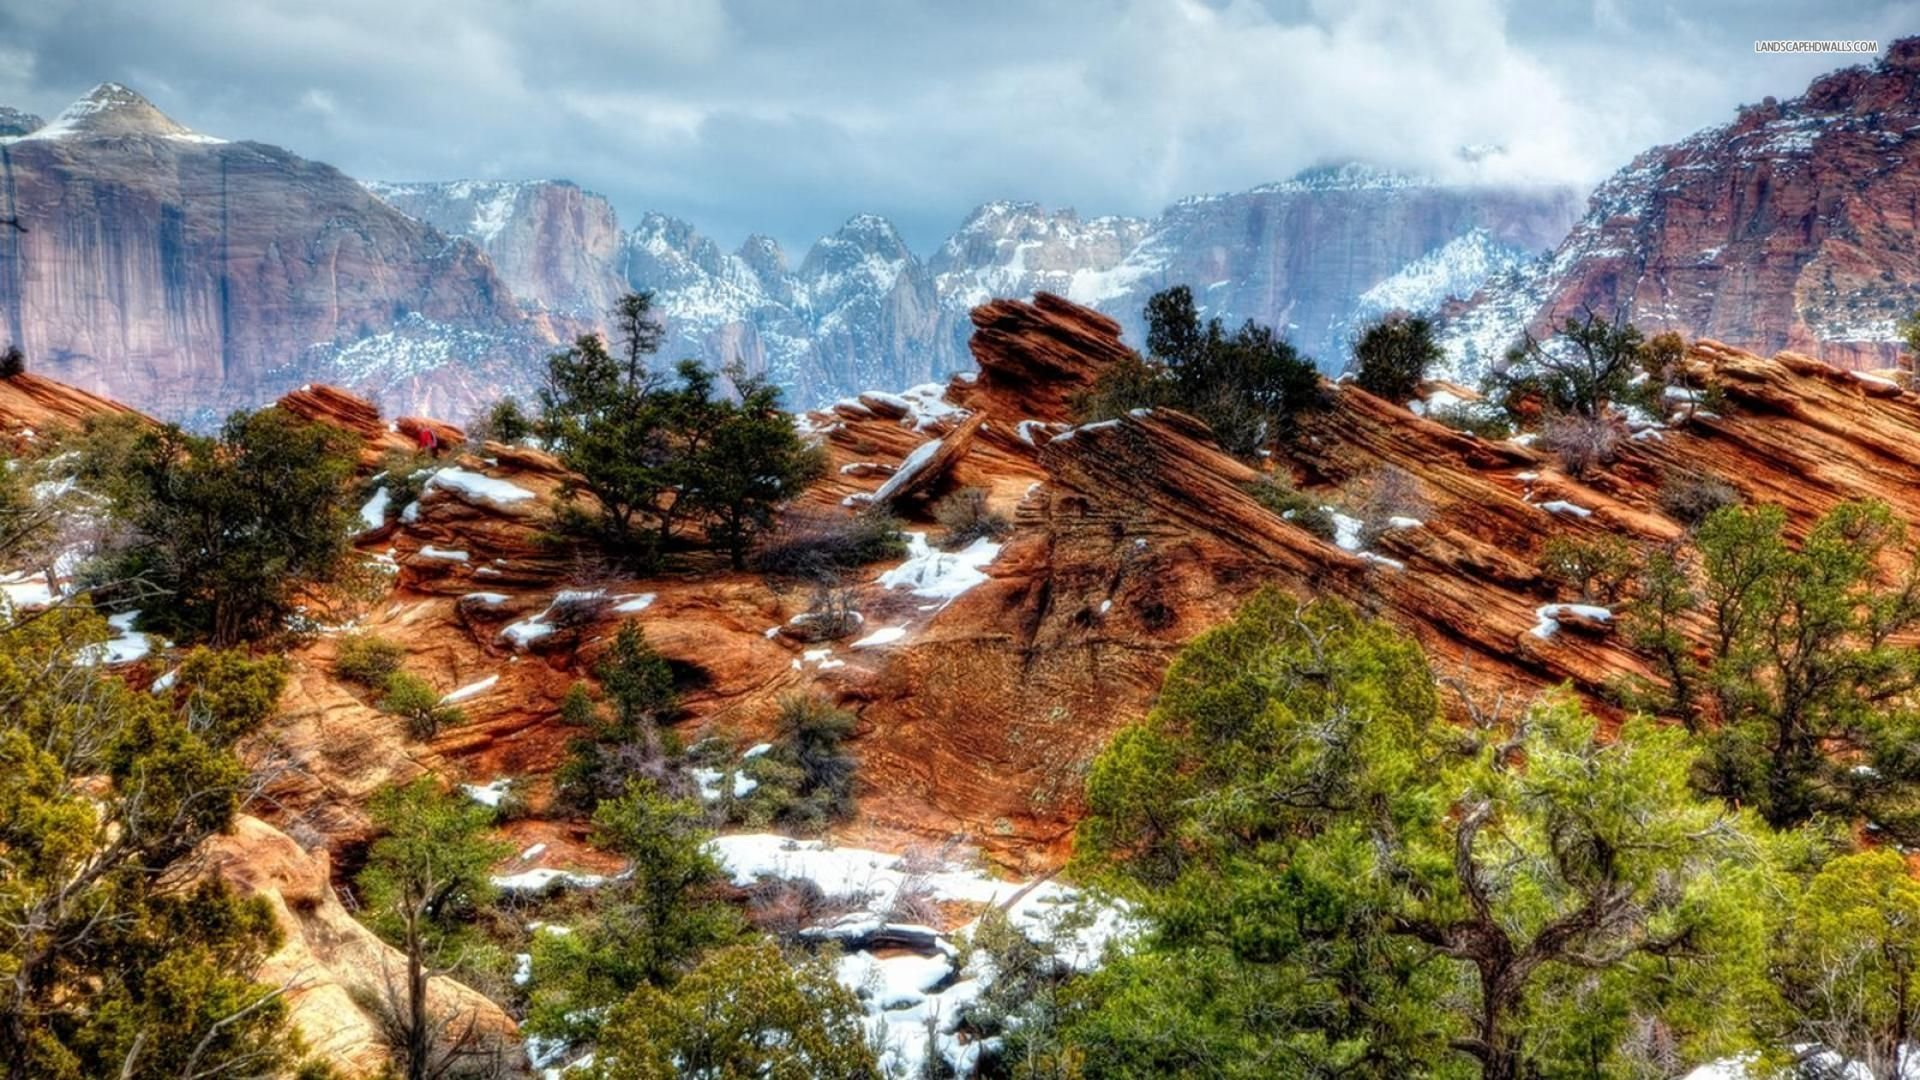 Zion National Park Hd Wallpaper Summit 1074588 Hd Wallpaper